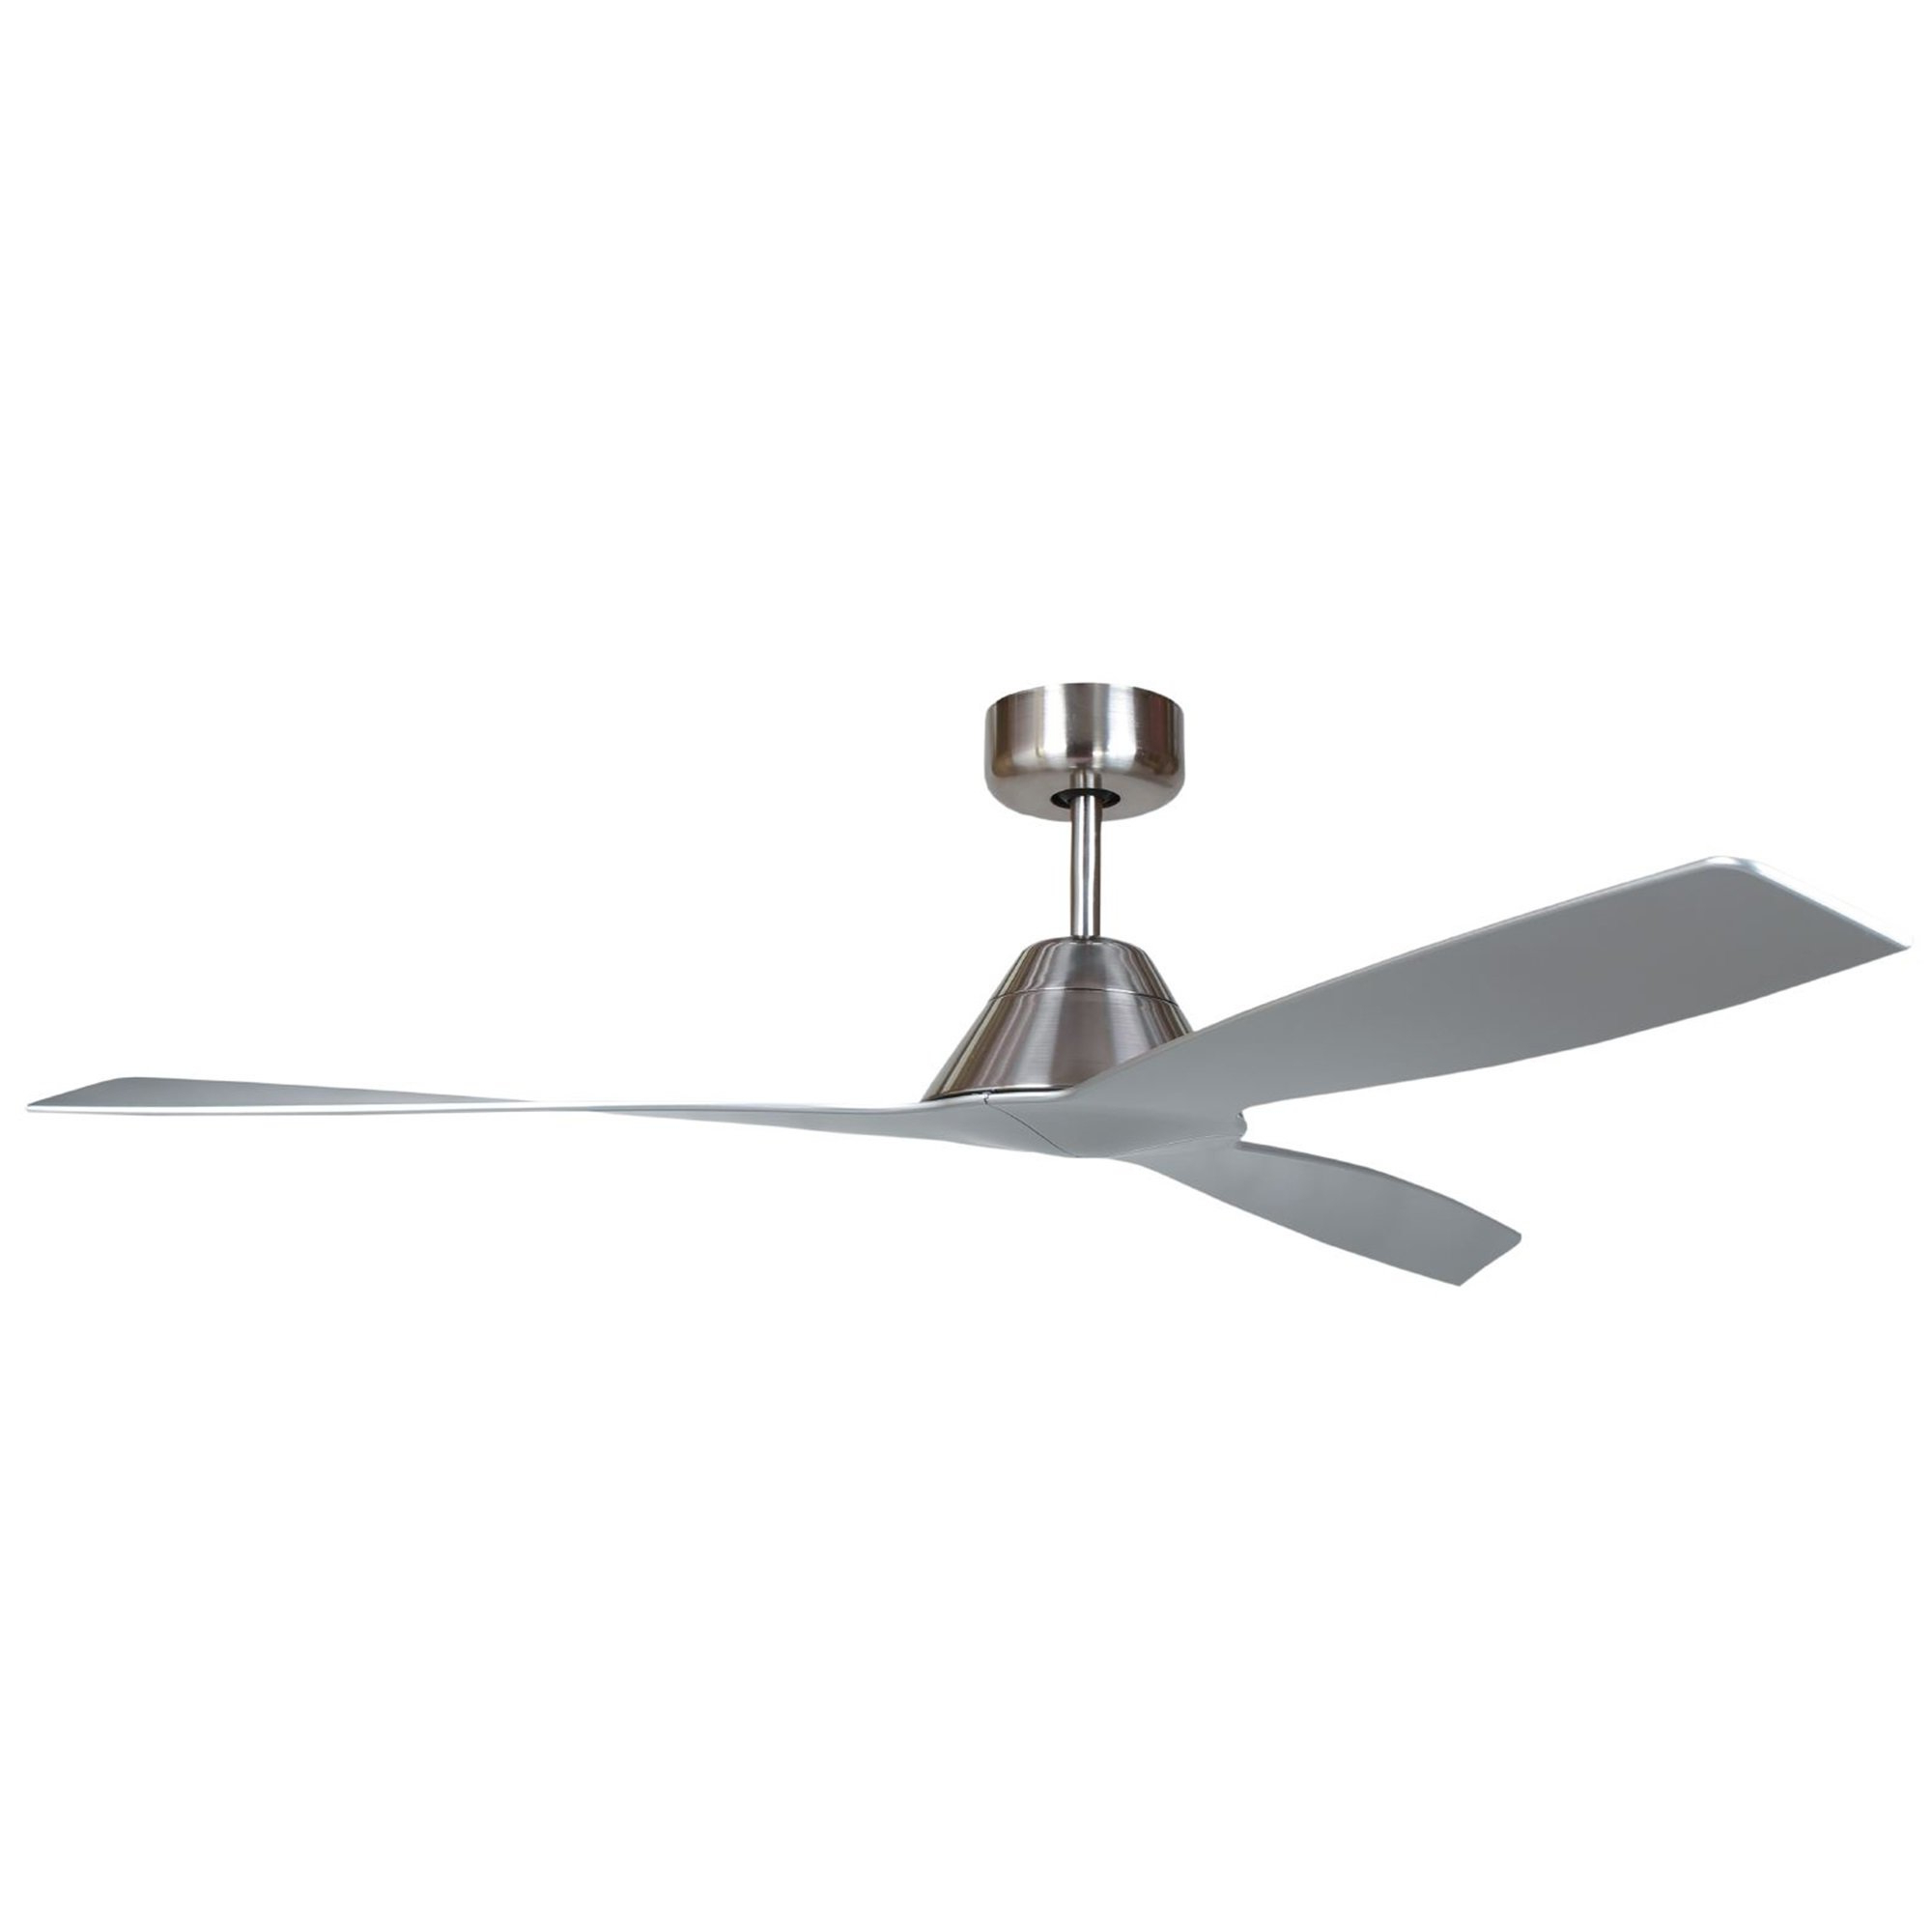 "52"" Armengol 3 Blade Ceiling Fan With Remote With Well Known Theron Catoe 3 Blade Ceiling Fans (View 15 of 20)"